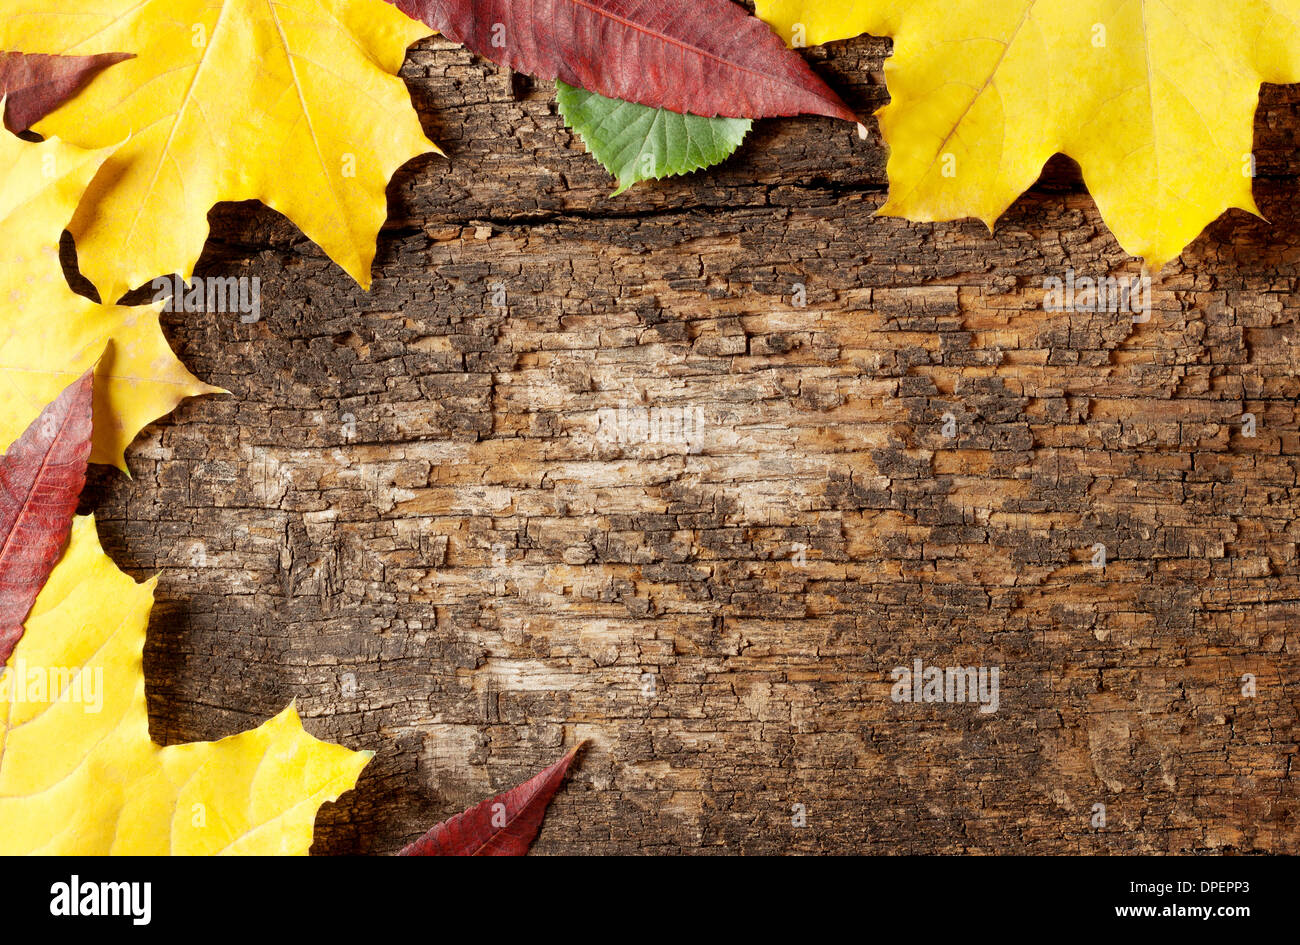 Background of old wooden planks with yellow autumn leaves - Stock Image